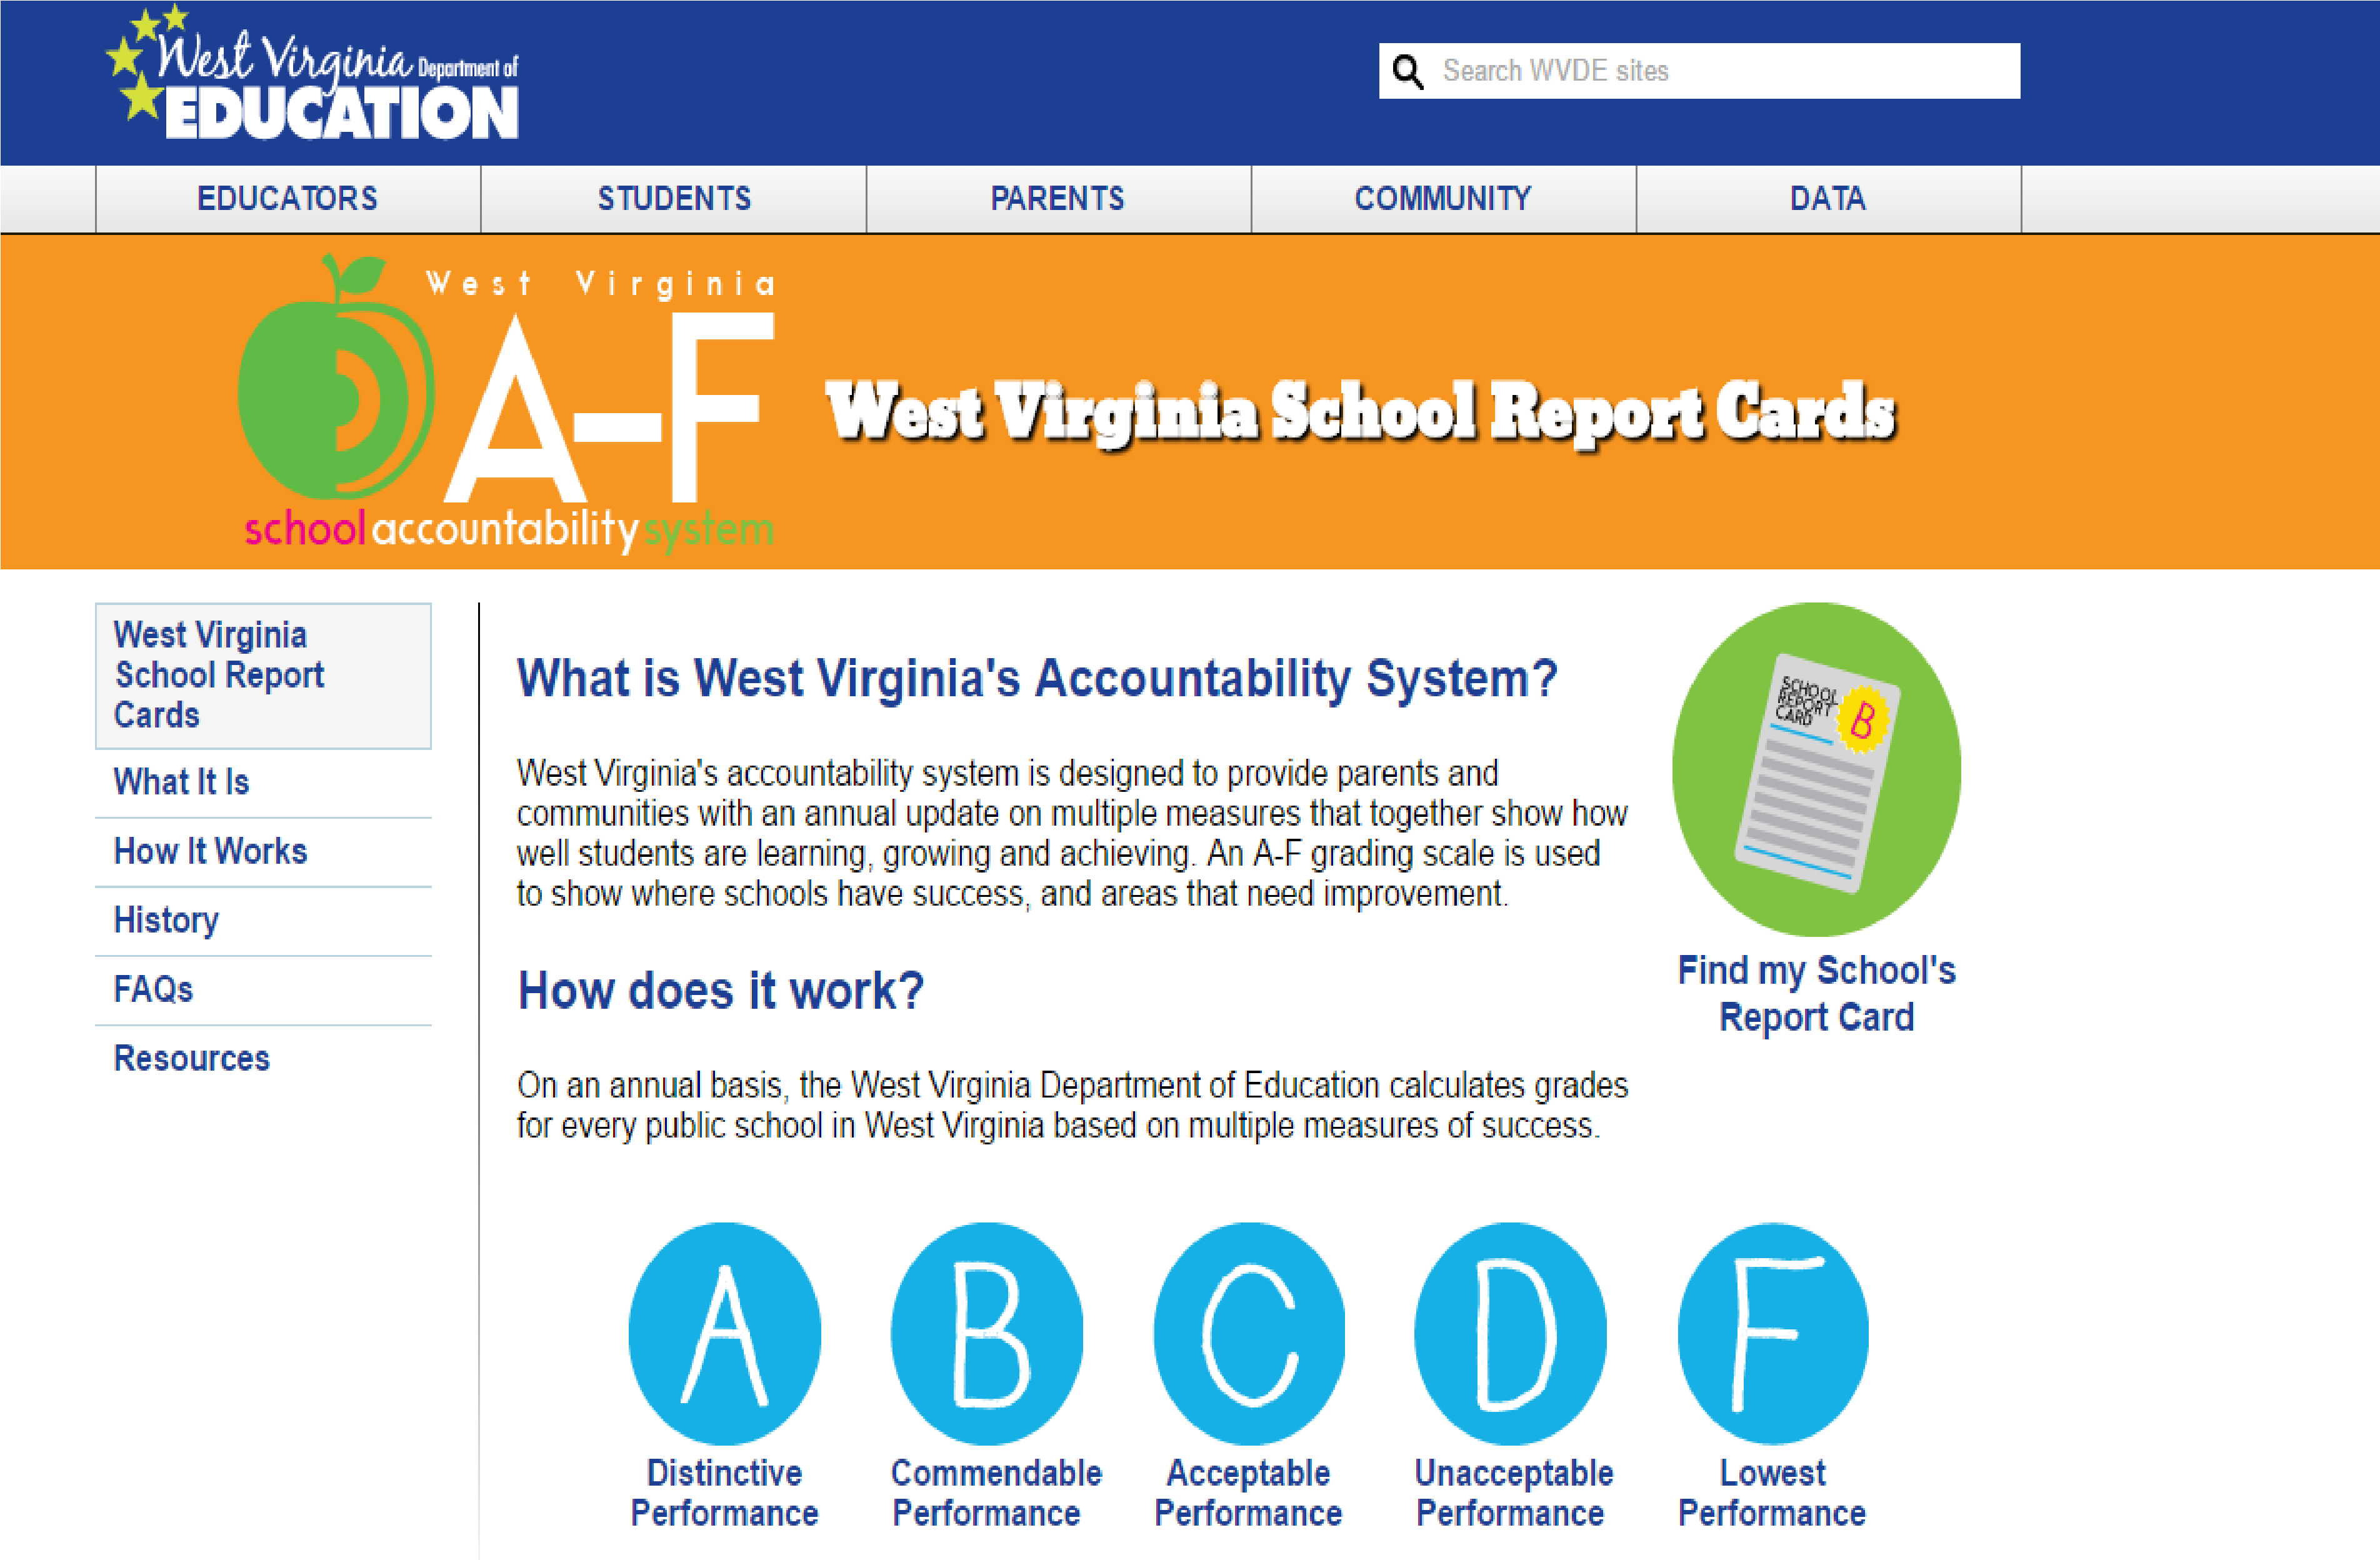 To find out more, click to visit the WVDE web site.